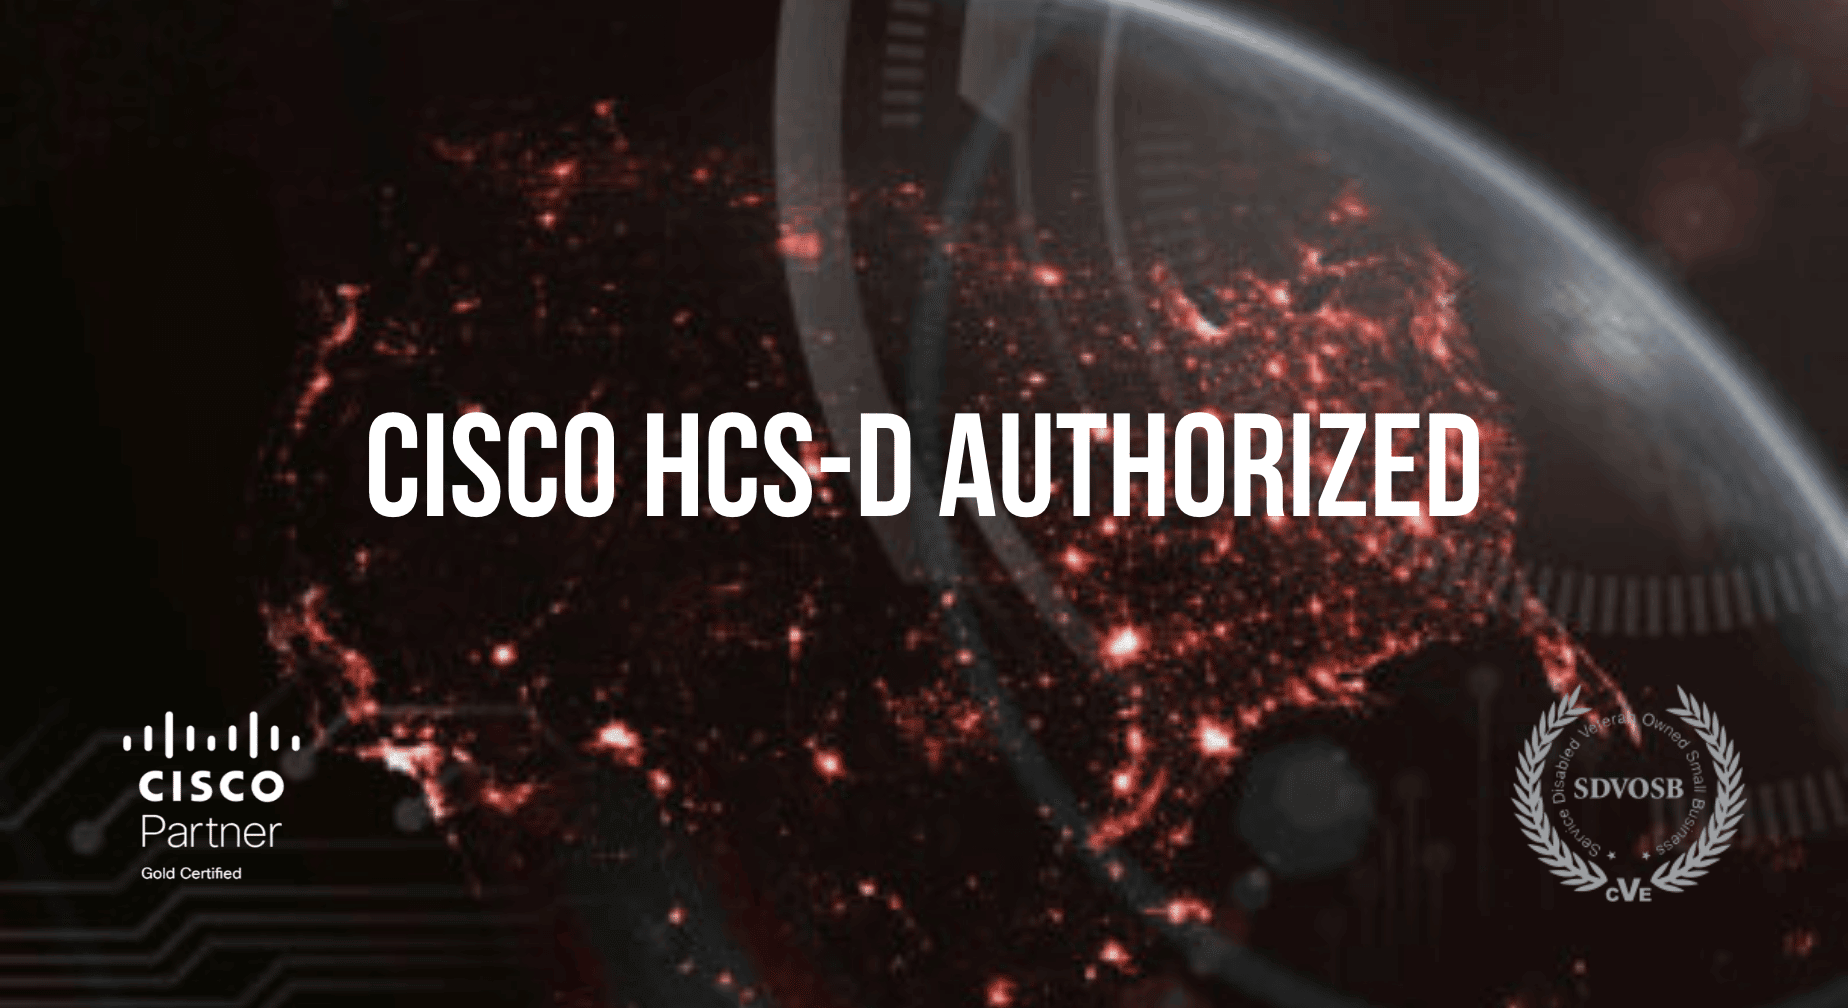 cisco hcs-d authorized